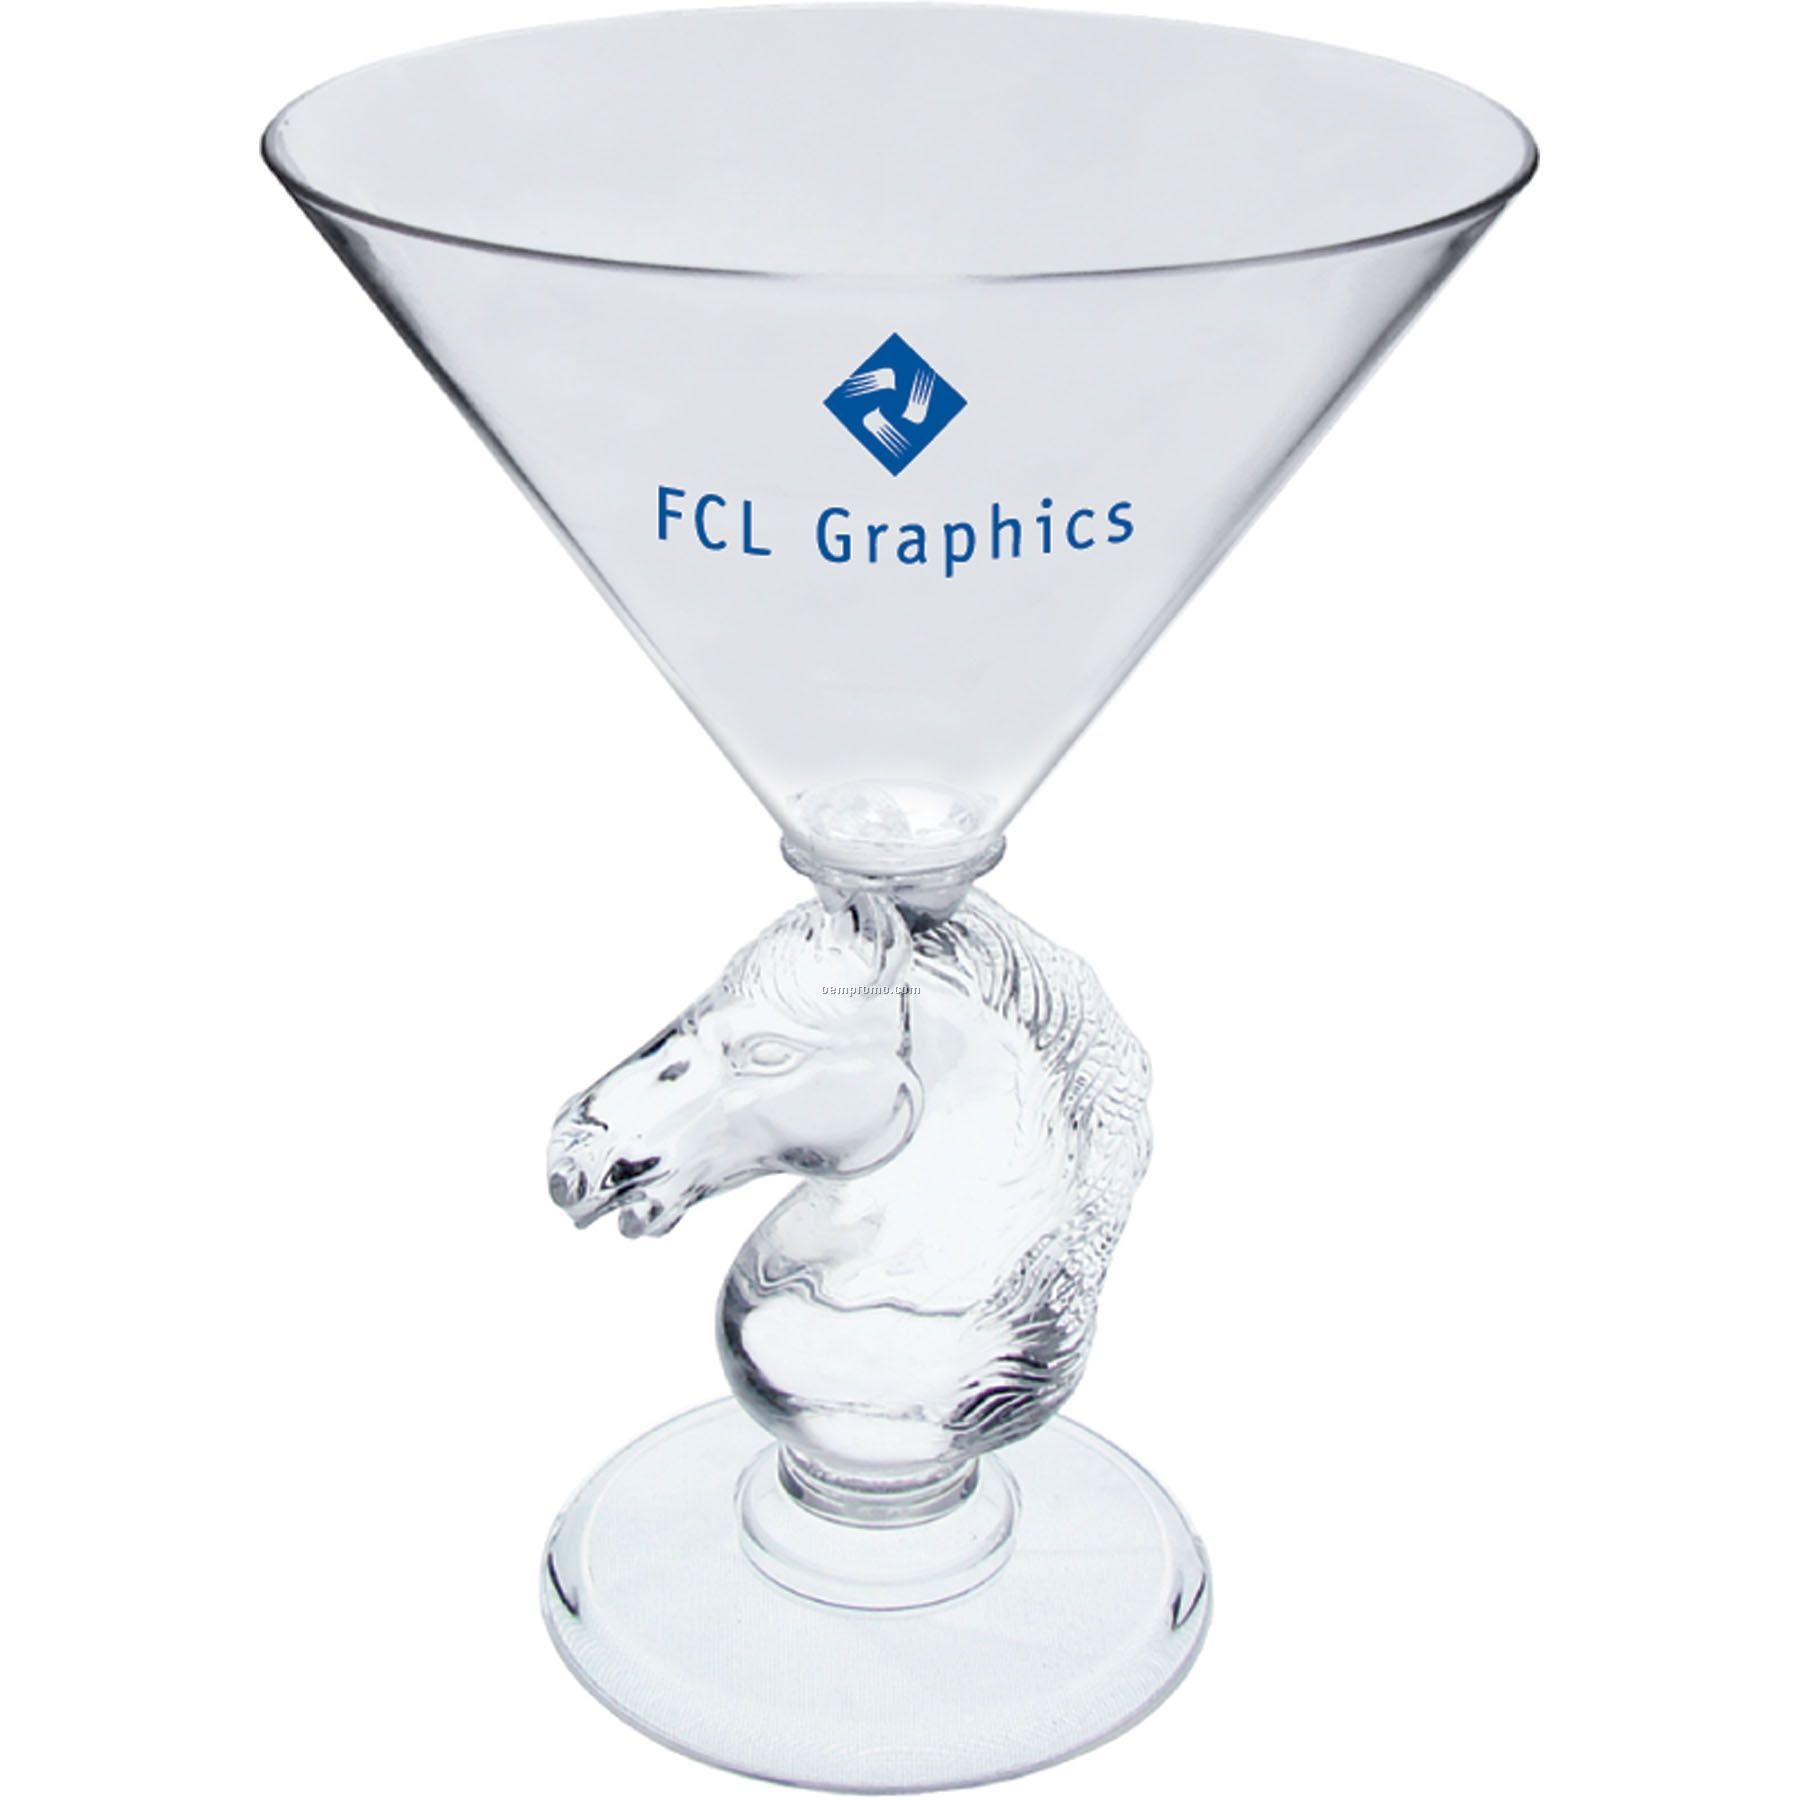 10 Oz. Novelty Stem Martini Glass